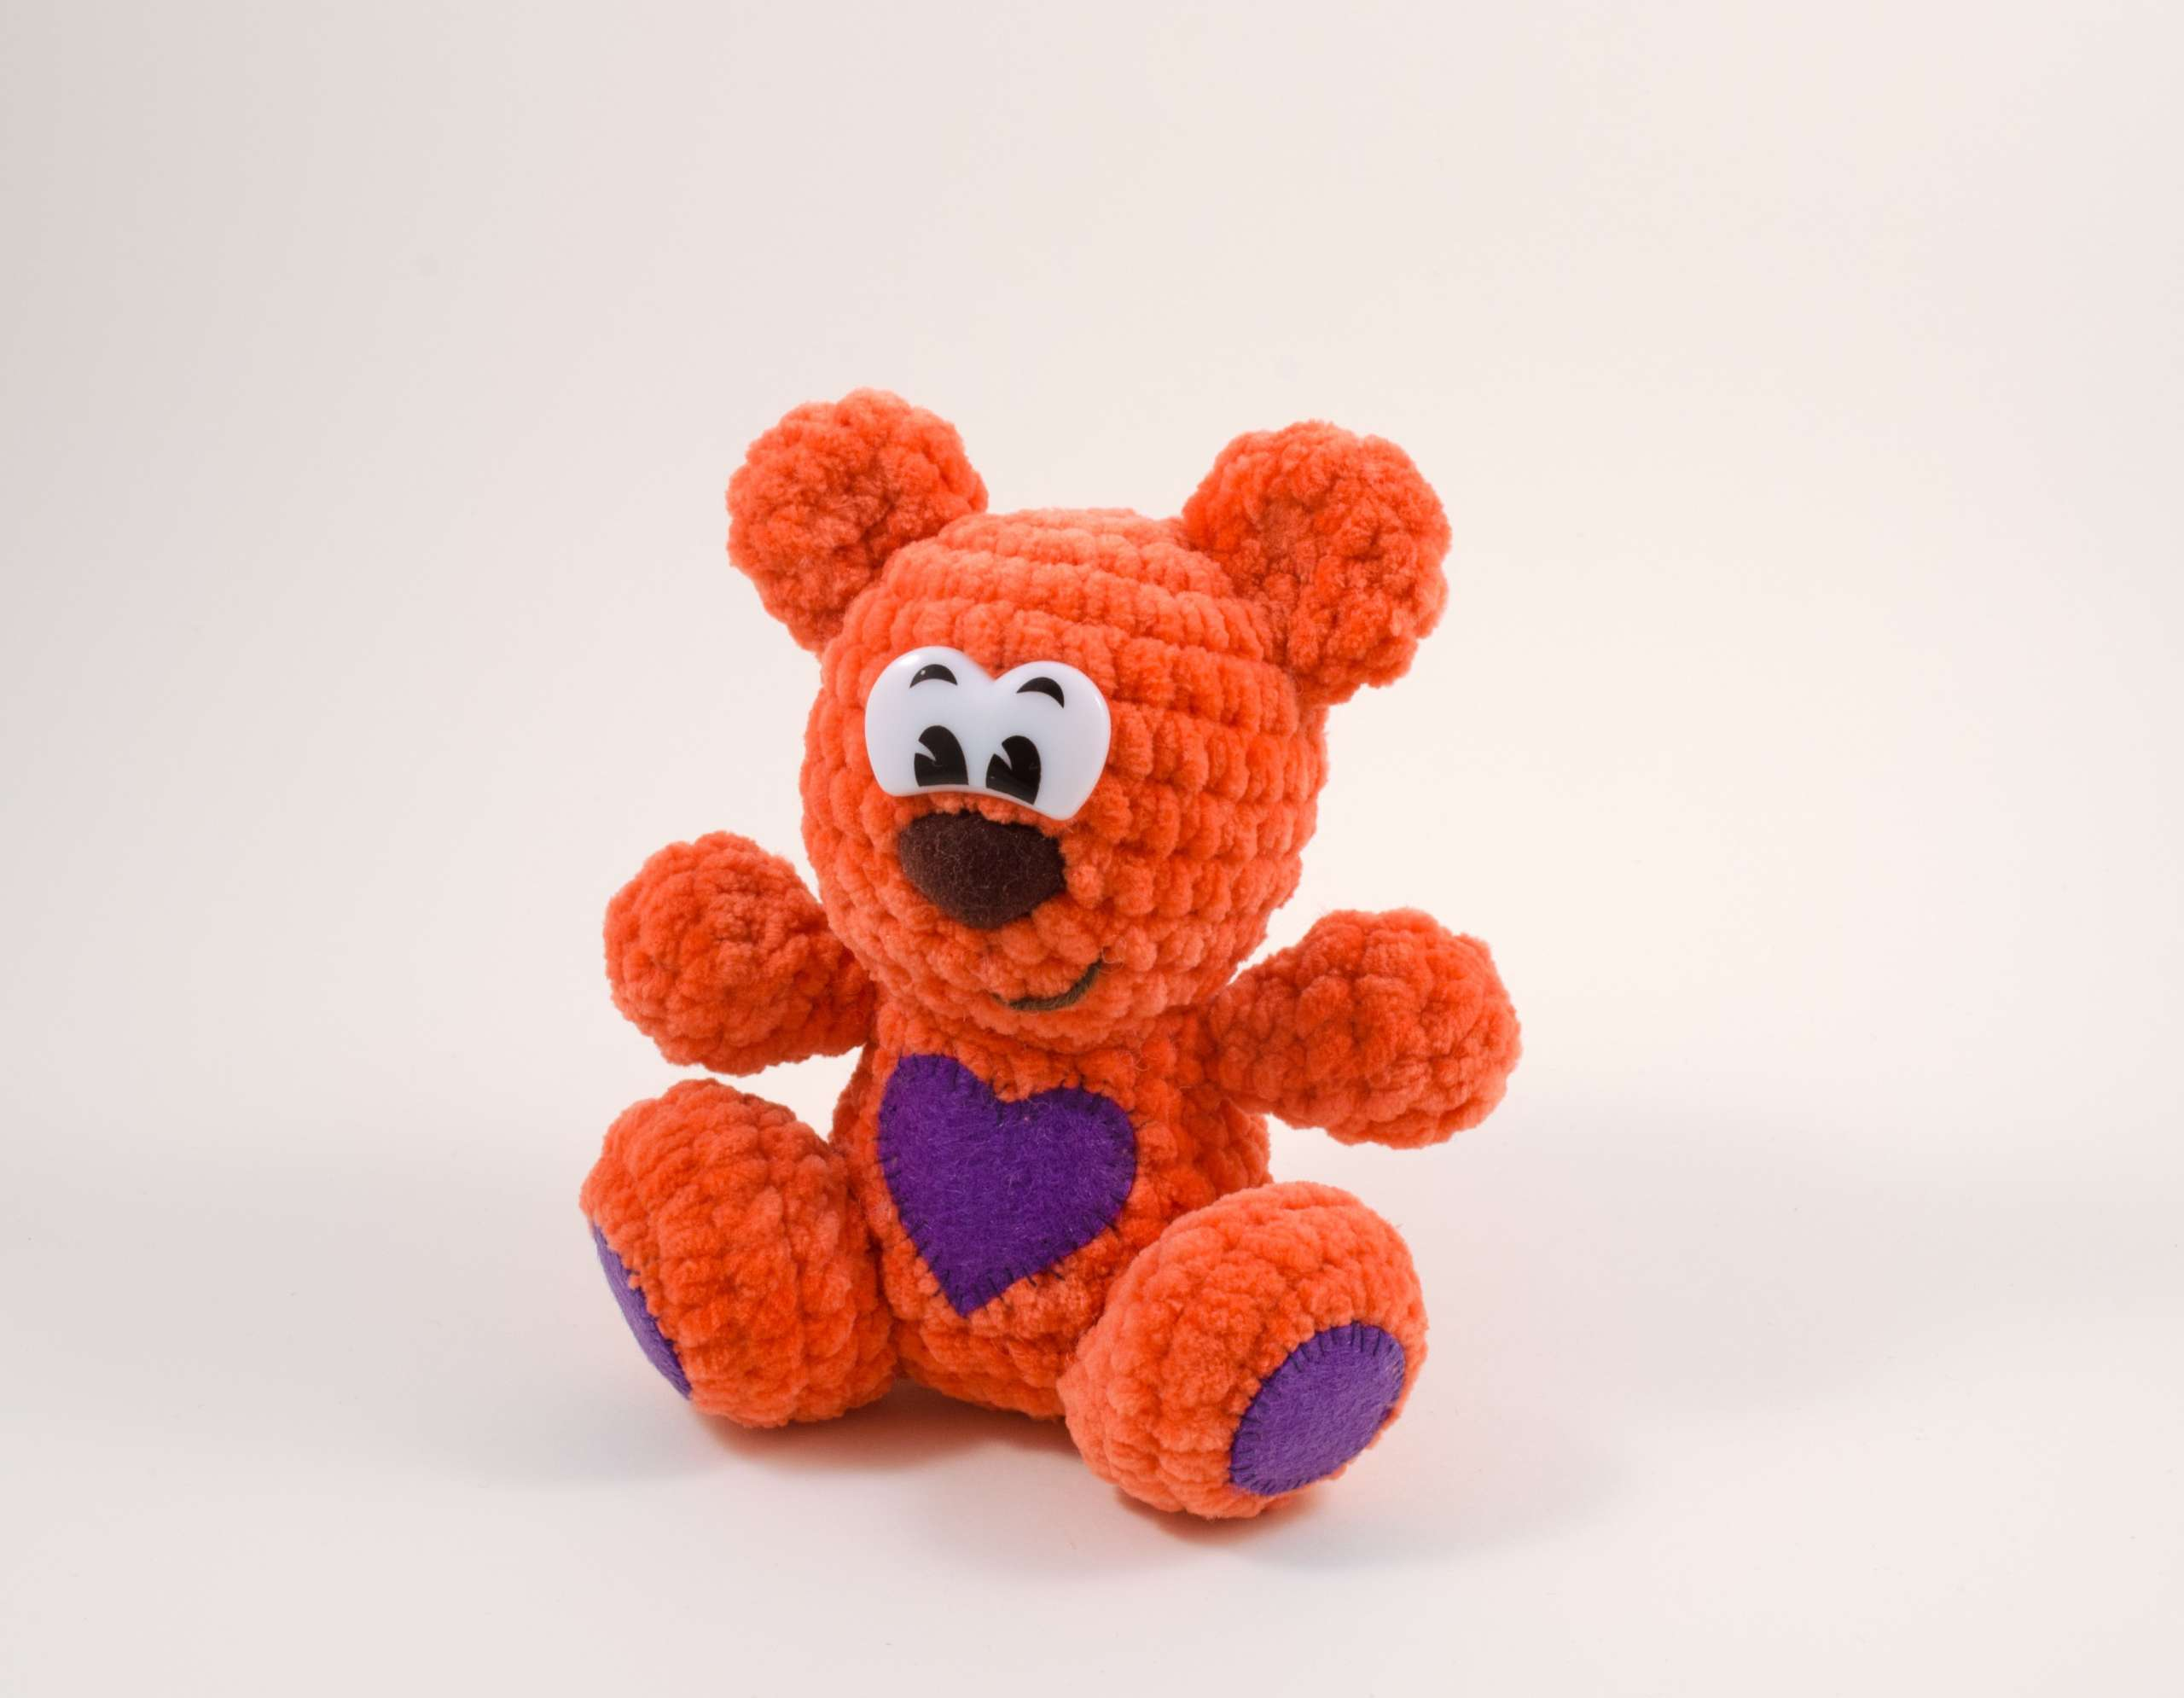 crochet teddy bear front view